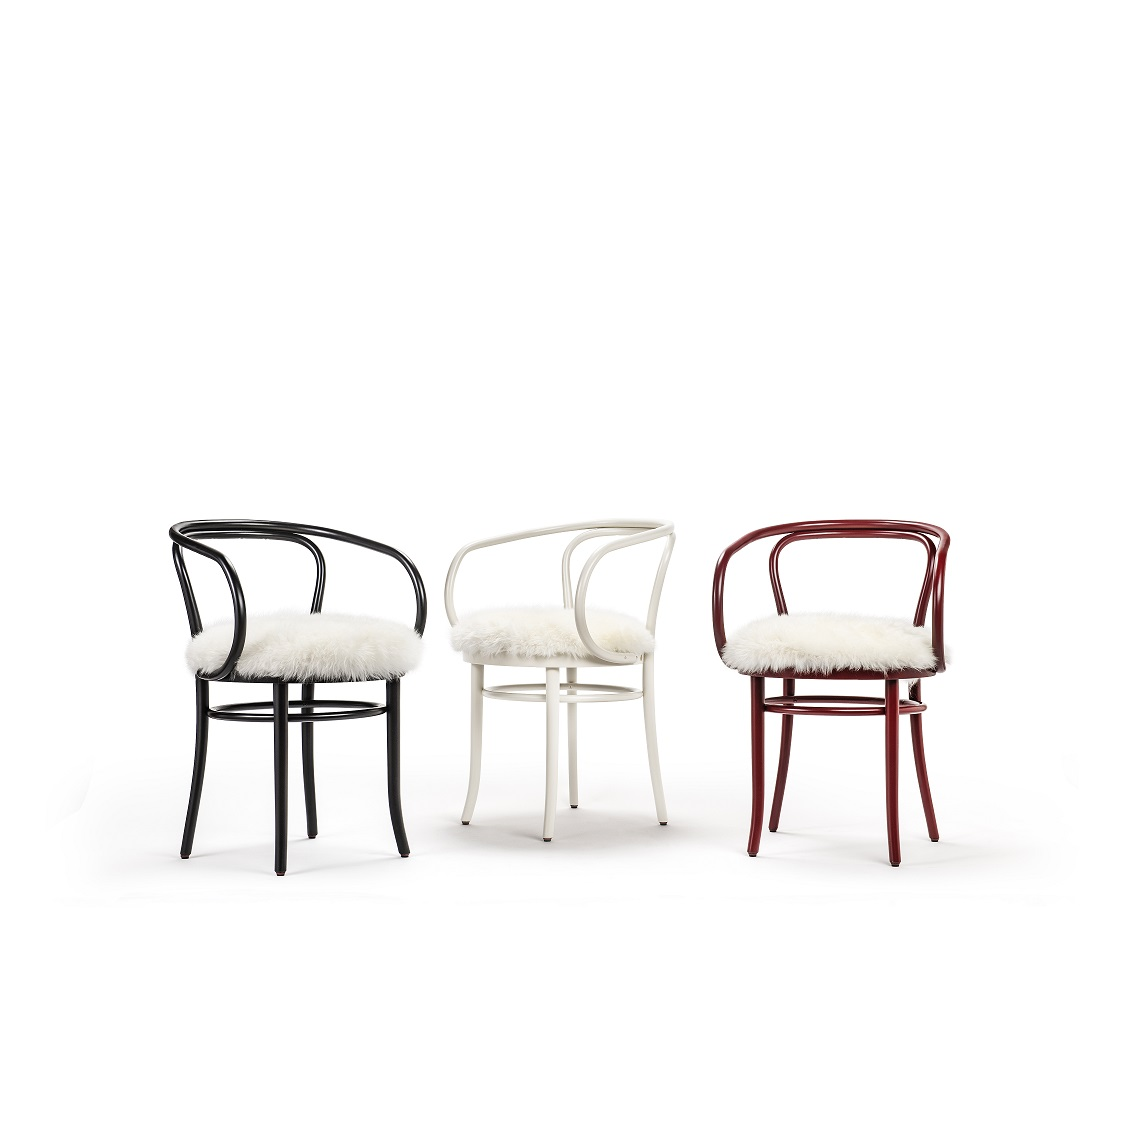 Gebrüder Thonet Vienna's Wiener Stuhl chairs and the Furia rocking horse are dressed in a soft furry coat